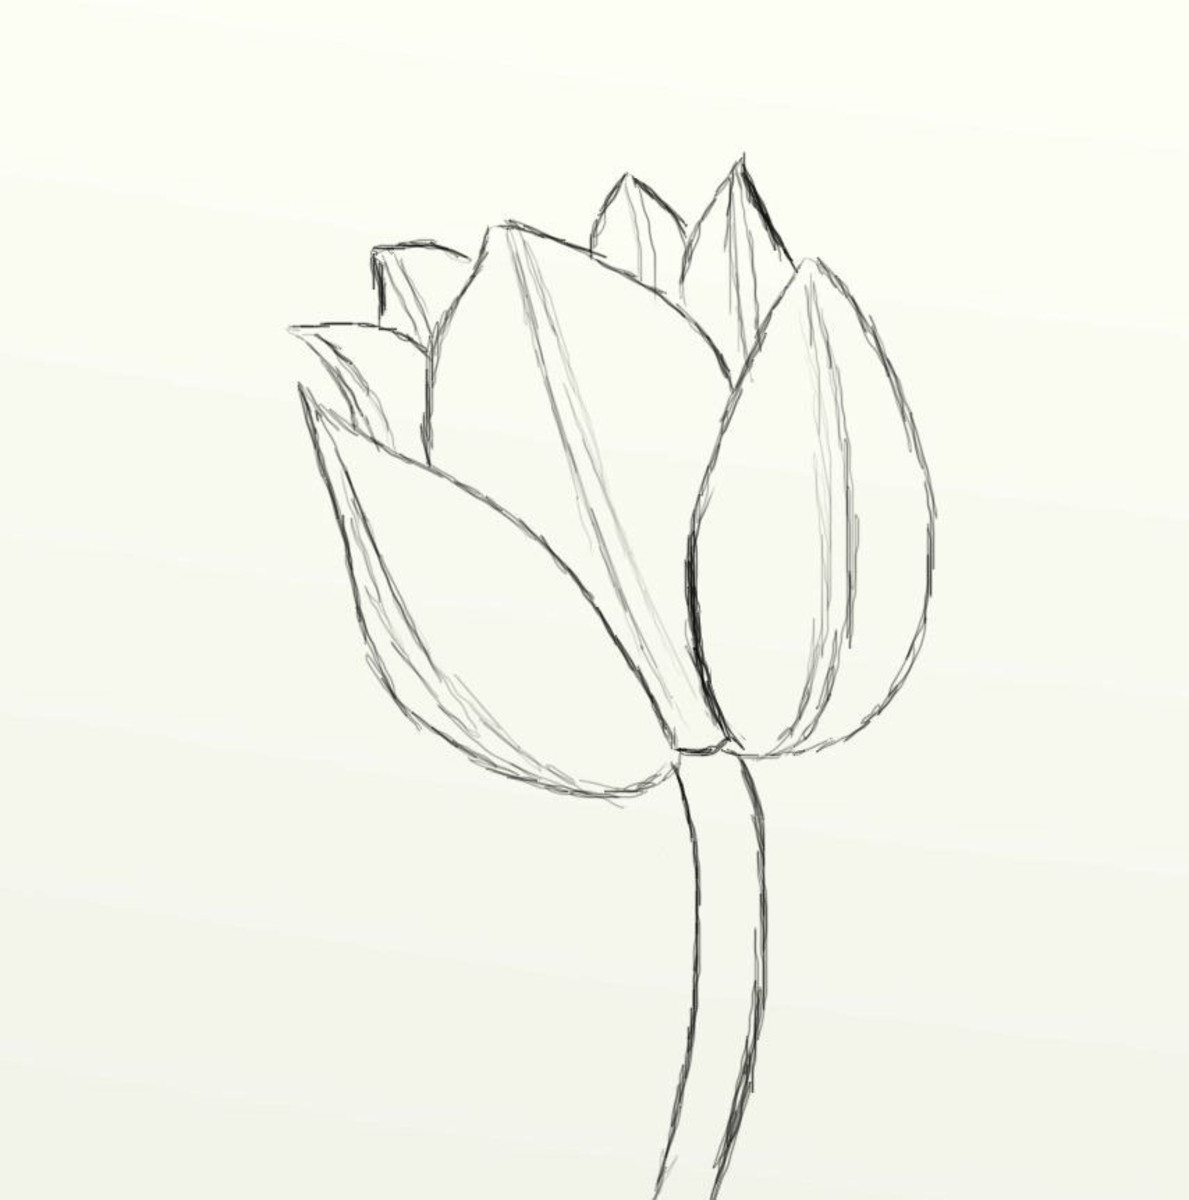 flower vase tattoo meaning with Ewrahphoto How To Draw A Easy Tulip on 452259987555996778 moreover Carving Roman Acanthus 4 moreover Vector Peony Flower Isolated On White 368014568 also Ewrahphoto How To Draw A Easy Tulip moreover Flower Vase Outline Drawing Luxury Flower Pot Outline Cliparts.